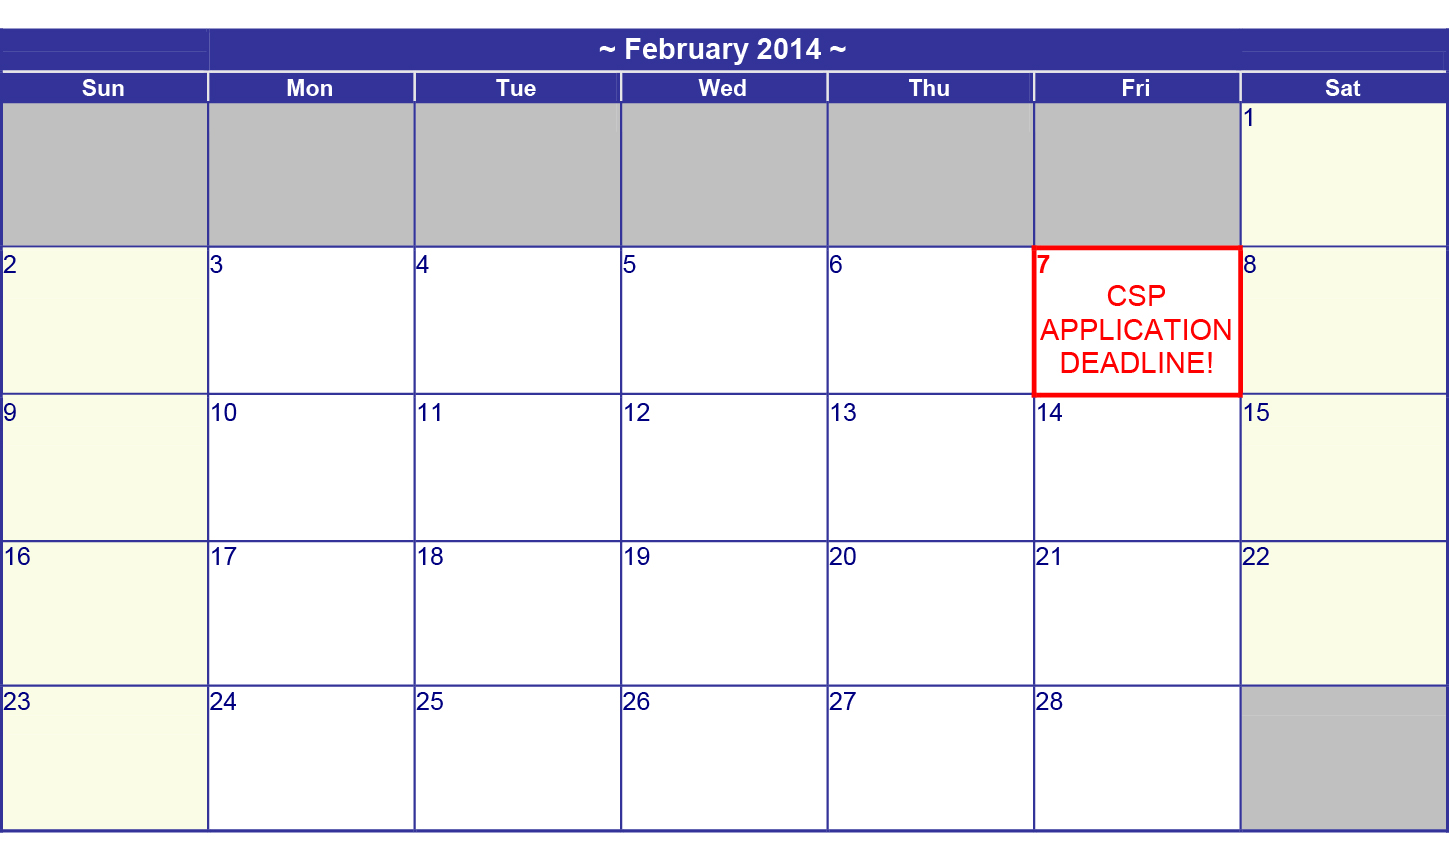 Update Deadline For Csp Applications Has Been Extended To